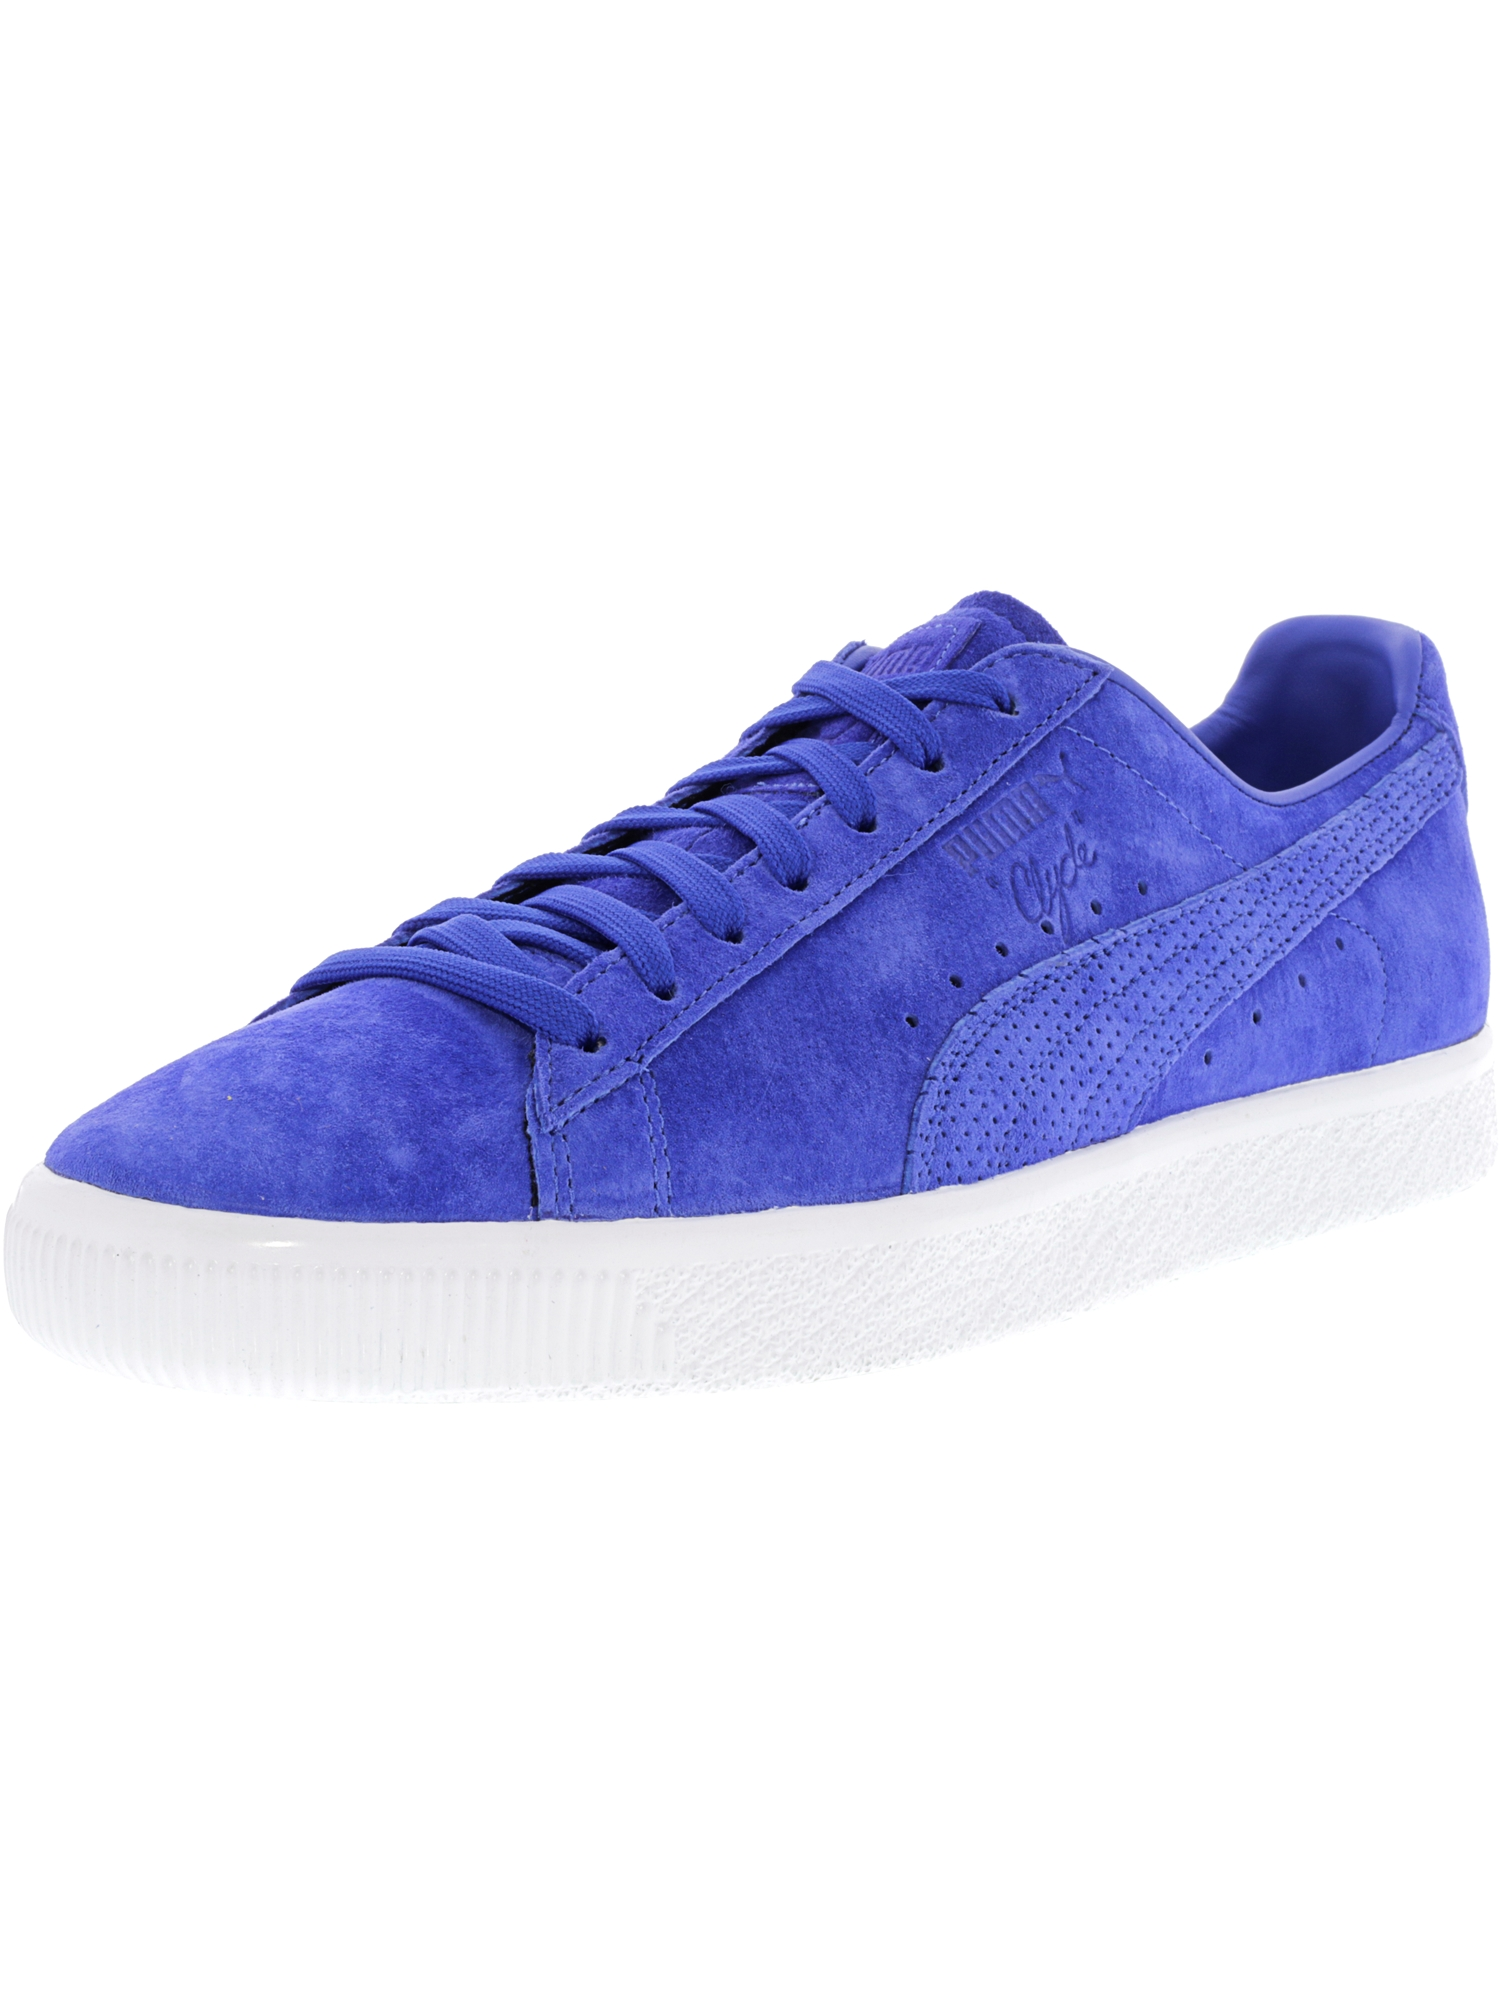 the latest a41ee 9bf41 Puma Men s Clyde Mjrl Fm Dazzling Blue   Ankle-High Suede Fashion Sneaker -  9M